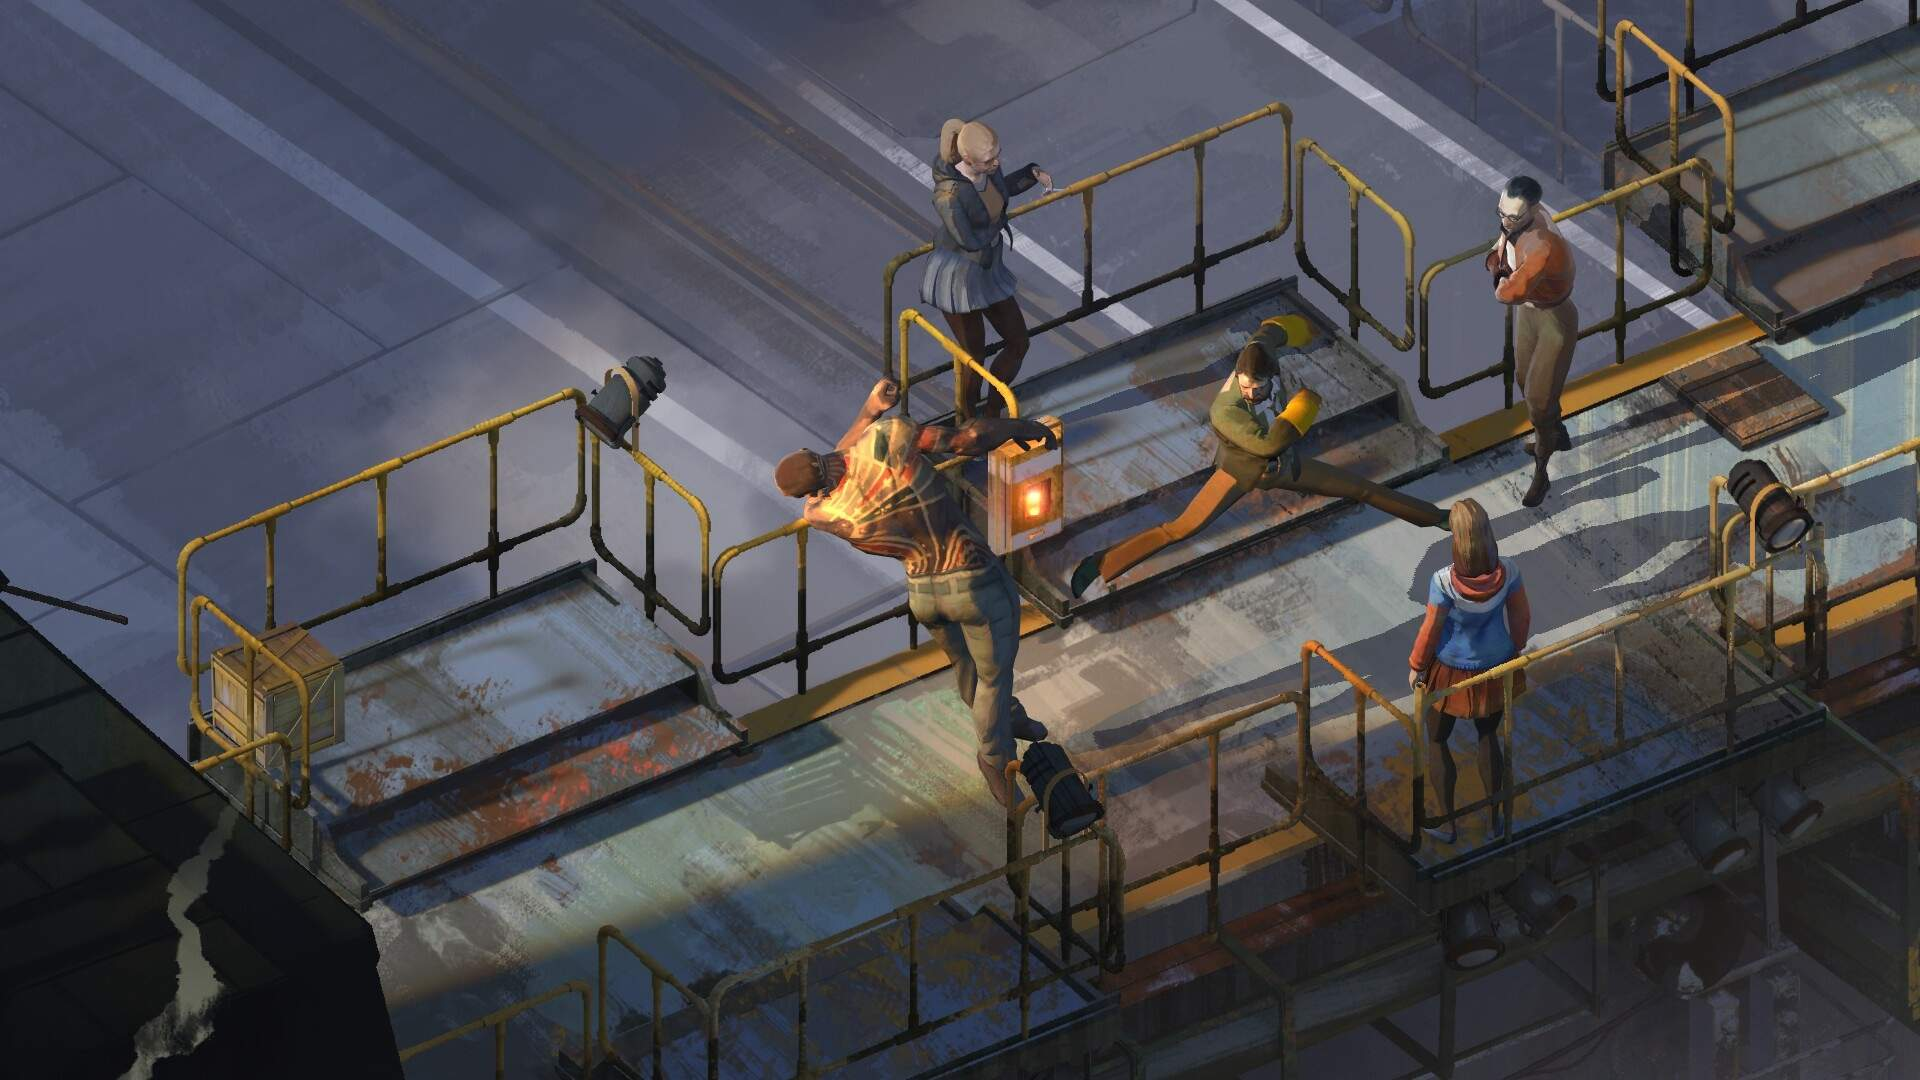 Disco Elysium: How to Get the Hanged Body Down and Get Past Measurehead